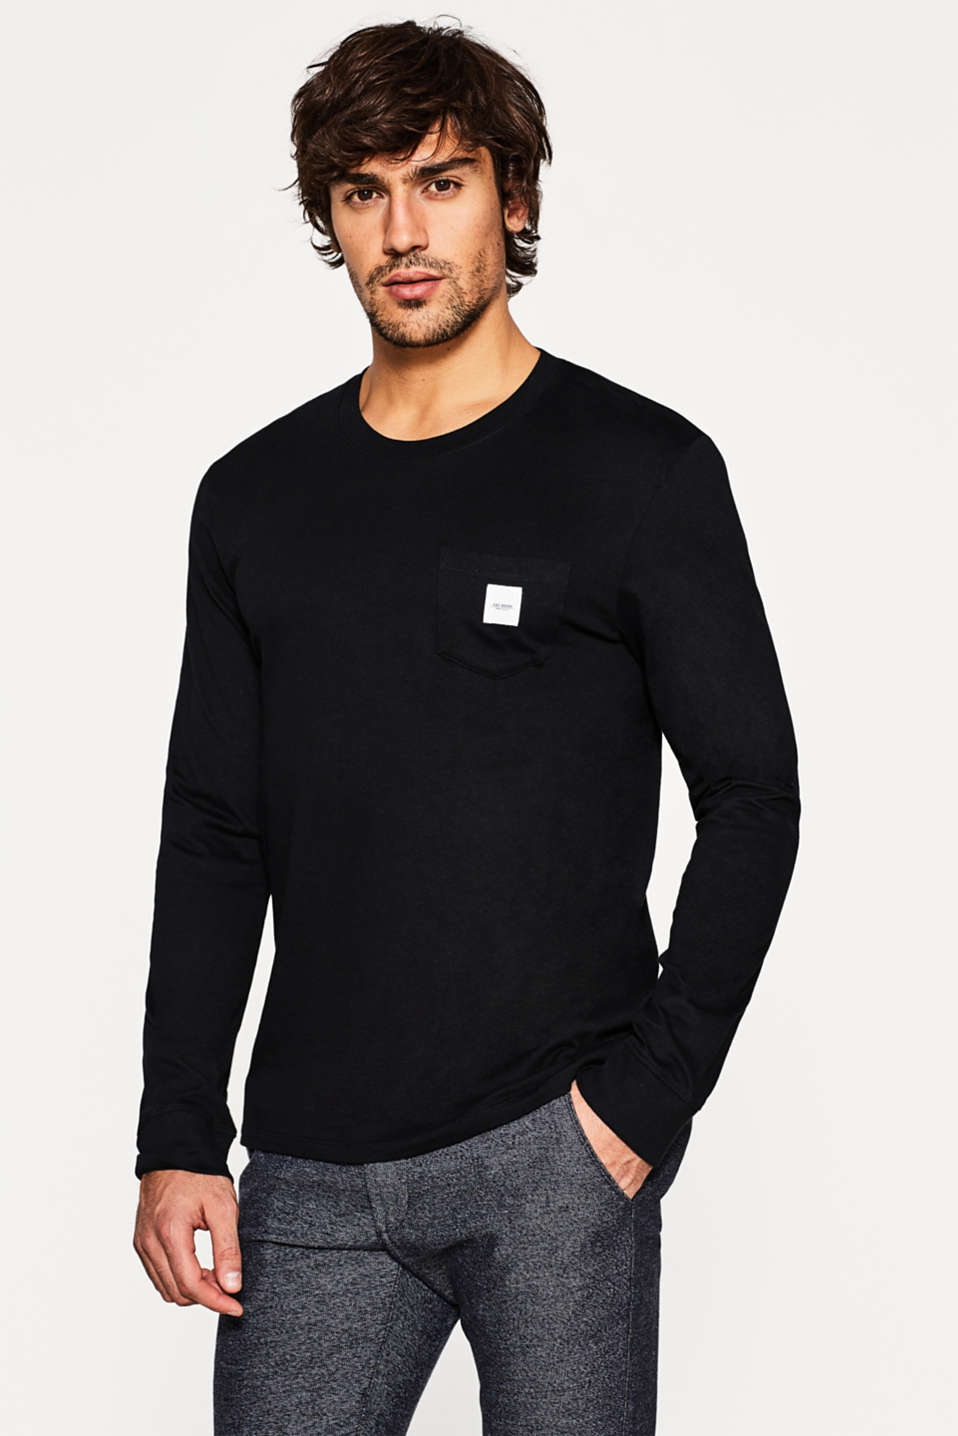 edc - Basic jersey long sleeve top